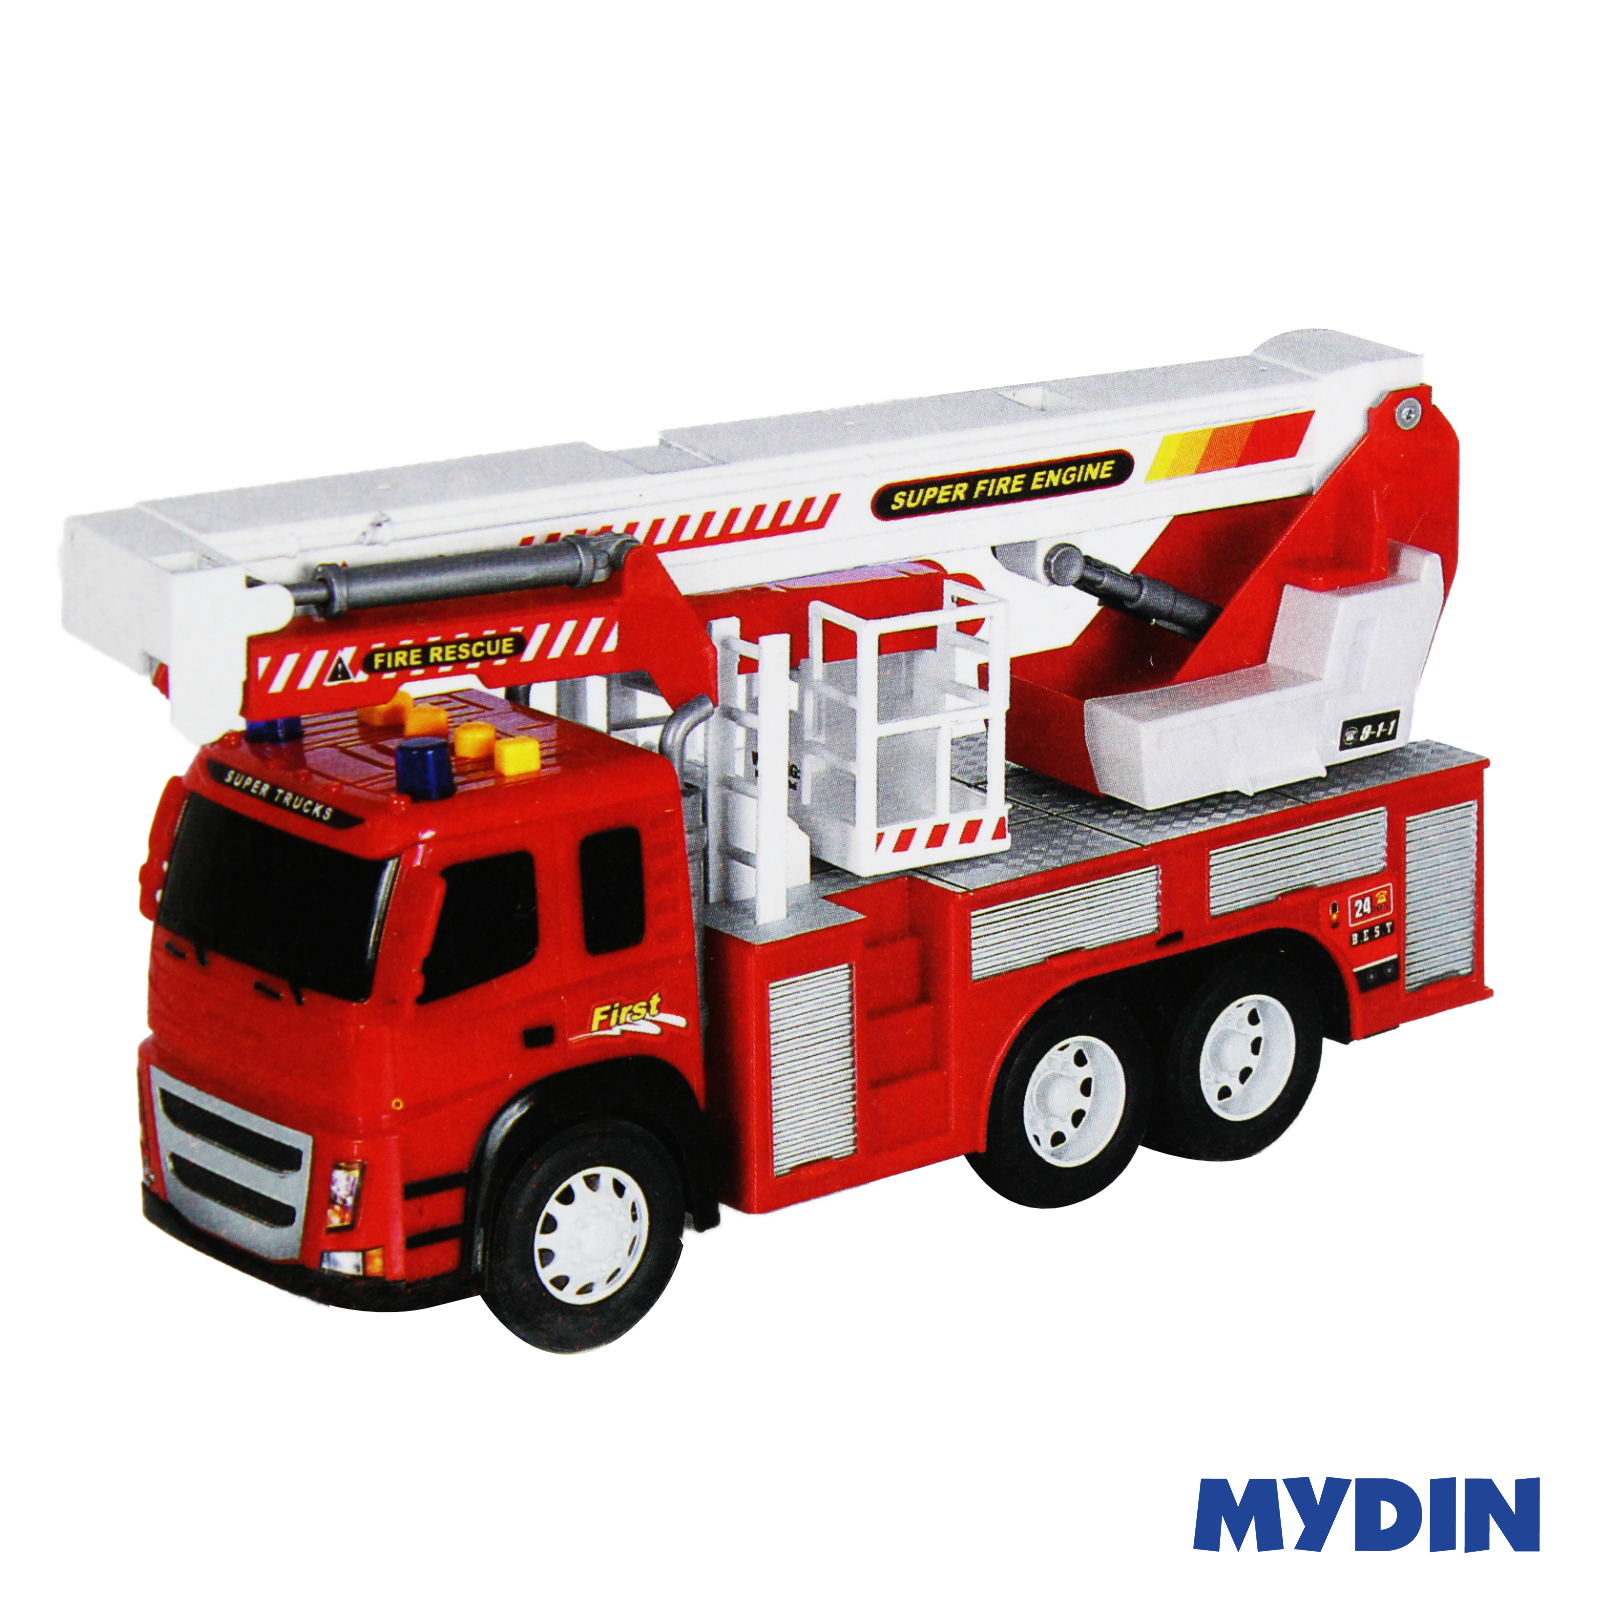 Fire Engine Truck Friction Powered Kids Toys vehicle model 1:12 scale